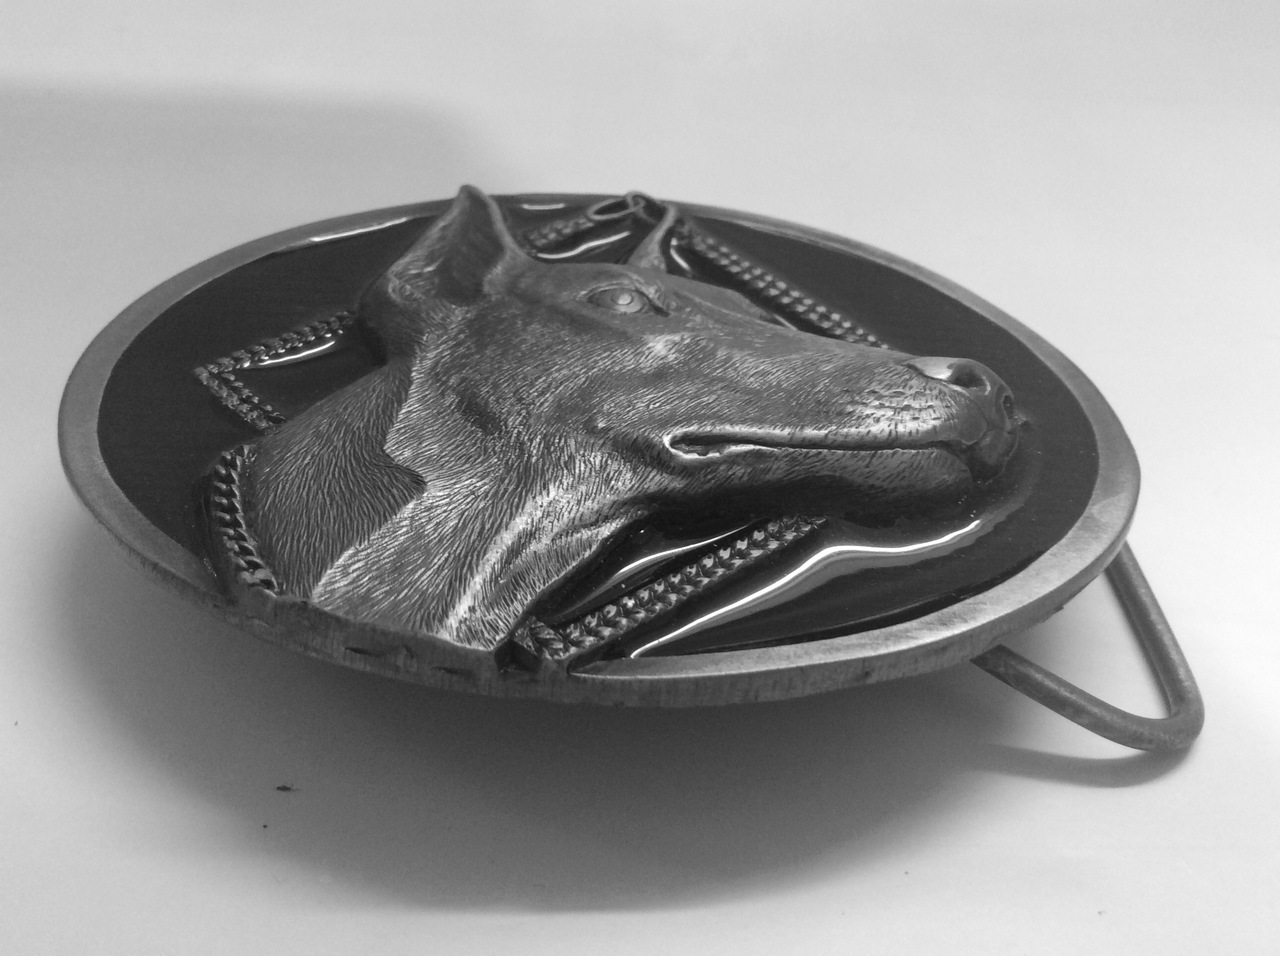 Dobe belt buckle